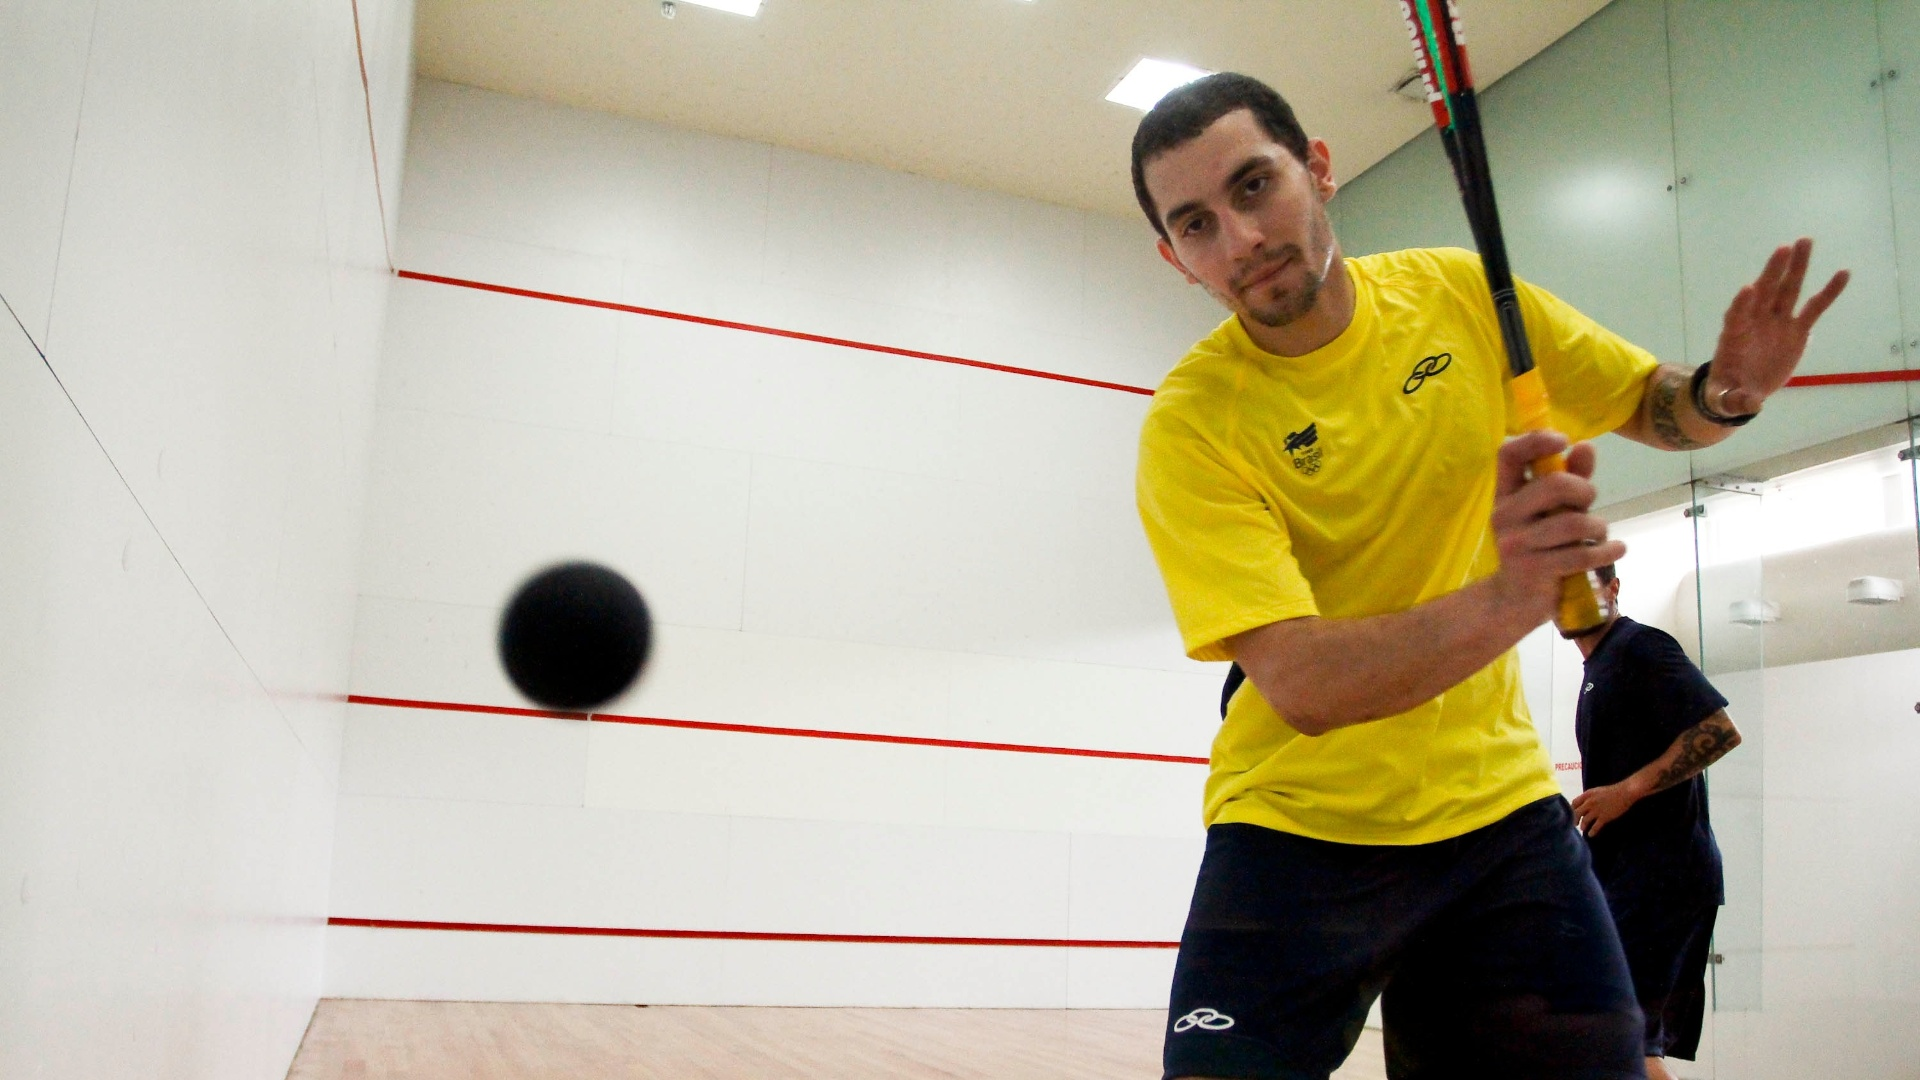 Vinicius Rodrigues, atleta do squash